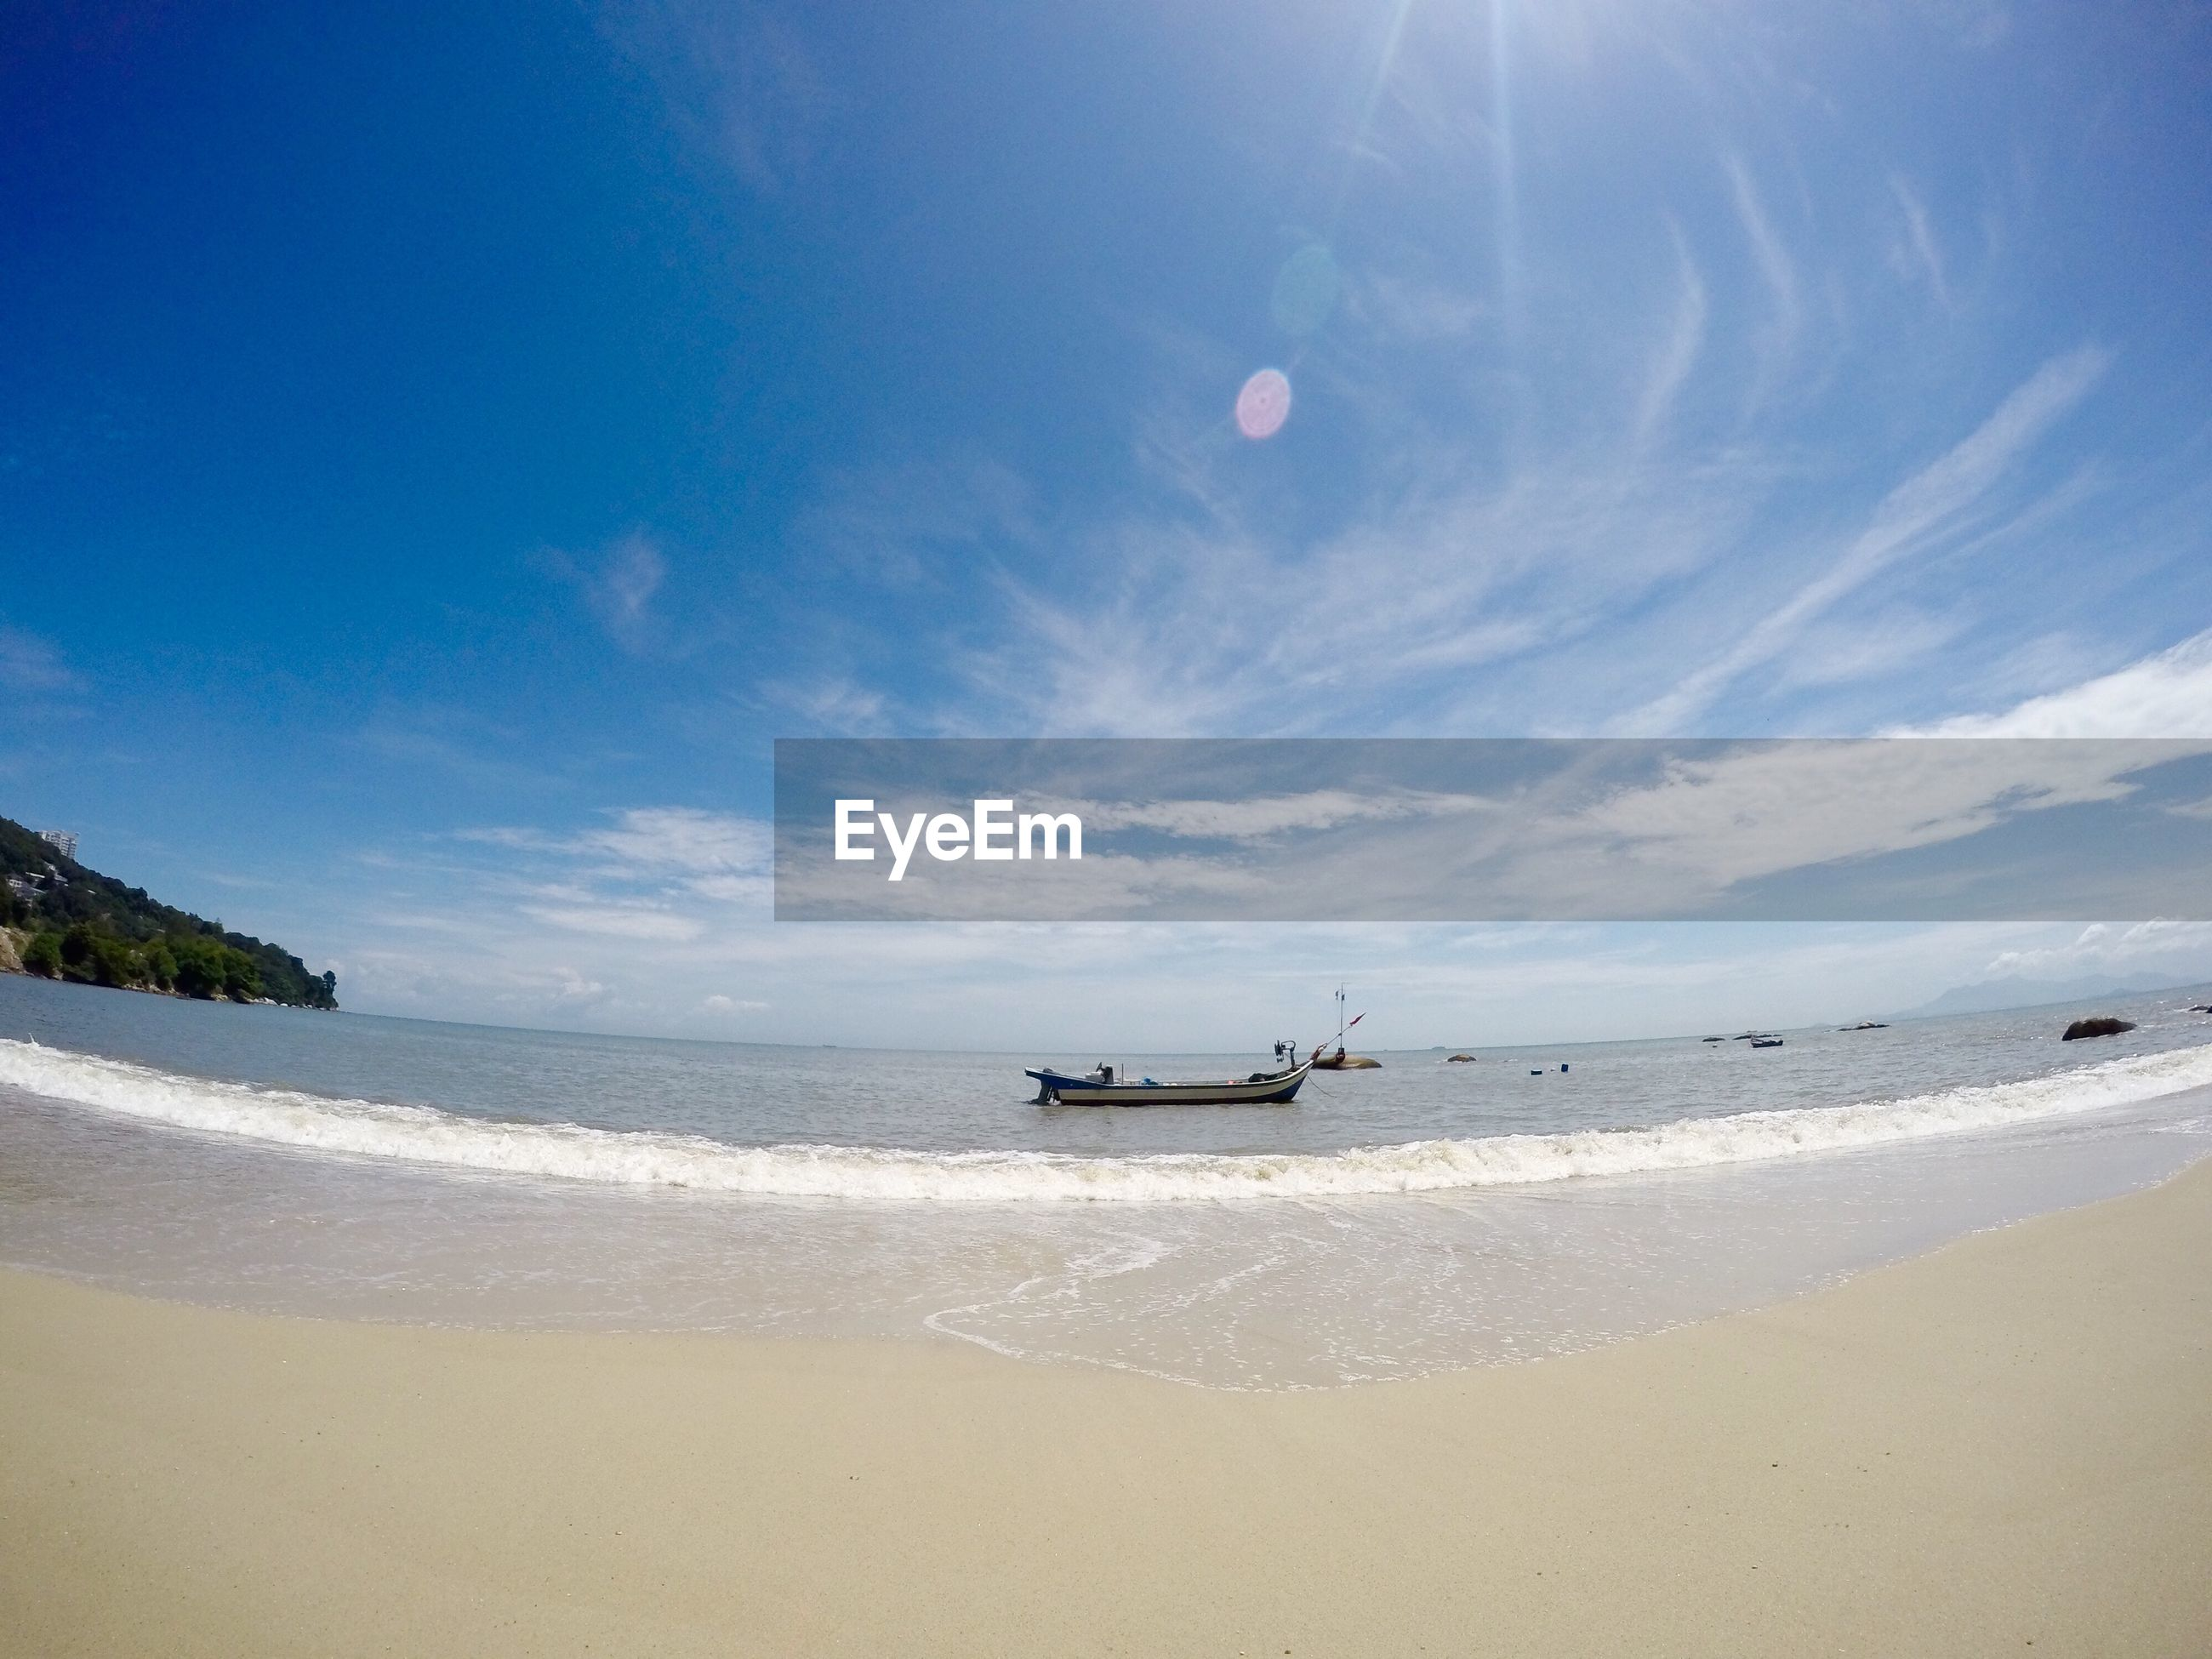 SCENIC VIEW OF PEOPLE ON BEACH AGAINST SKY